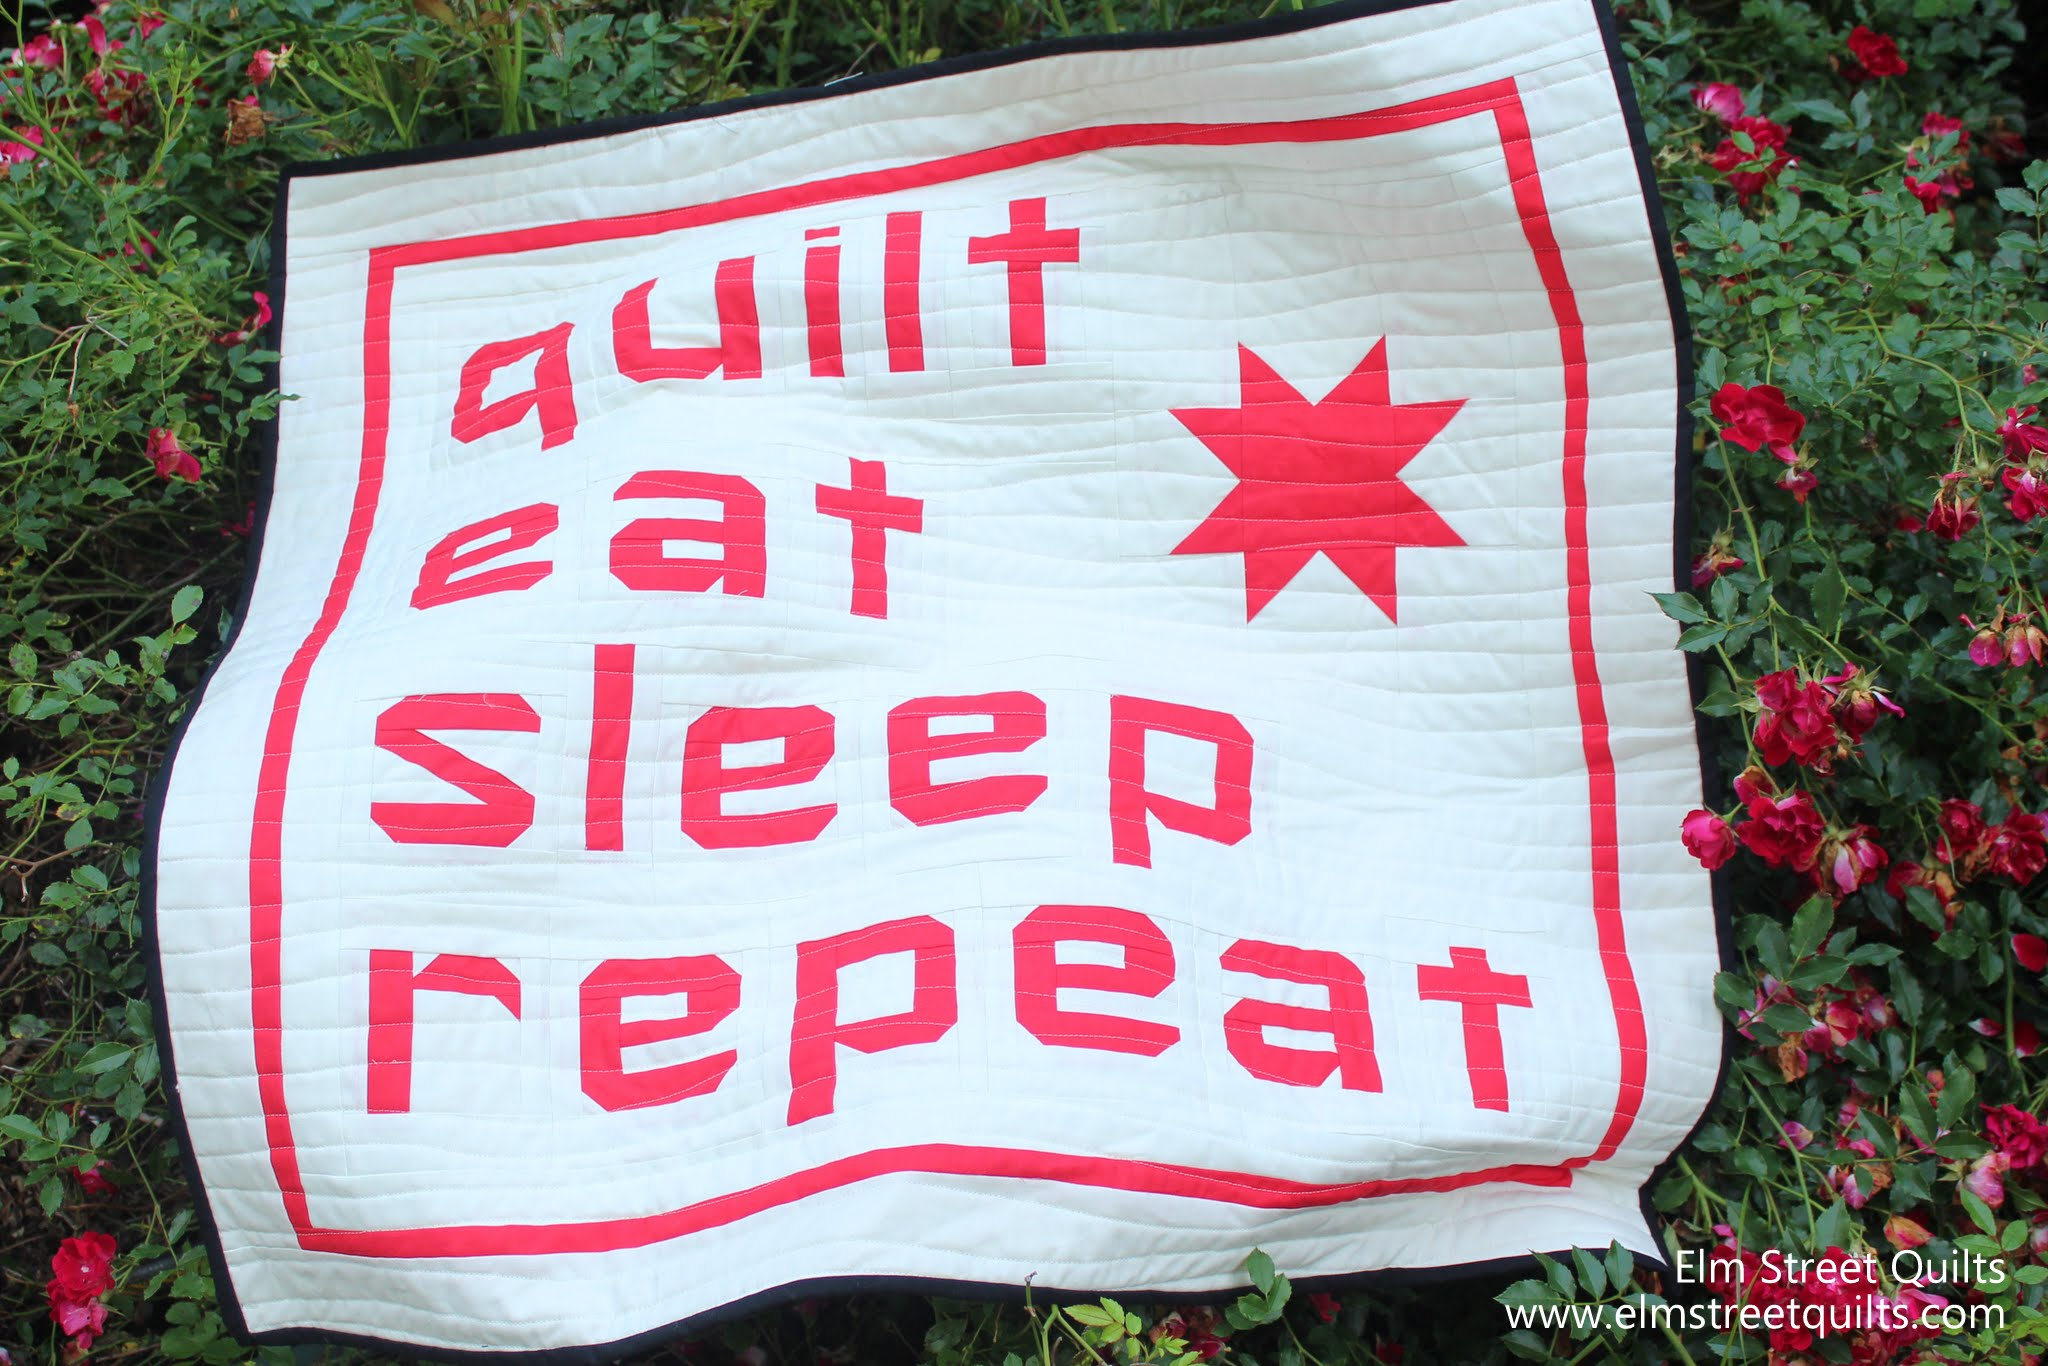 Elm Street Quilts repeat